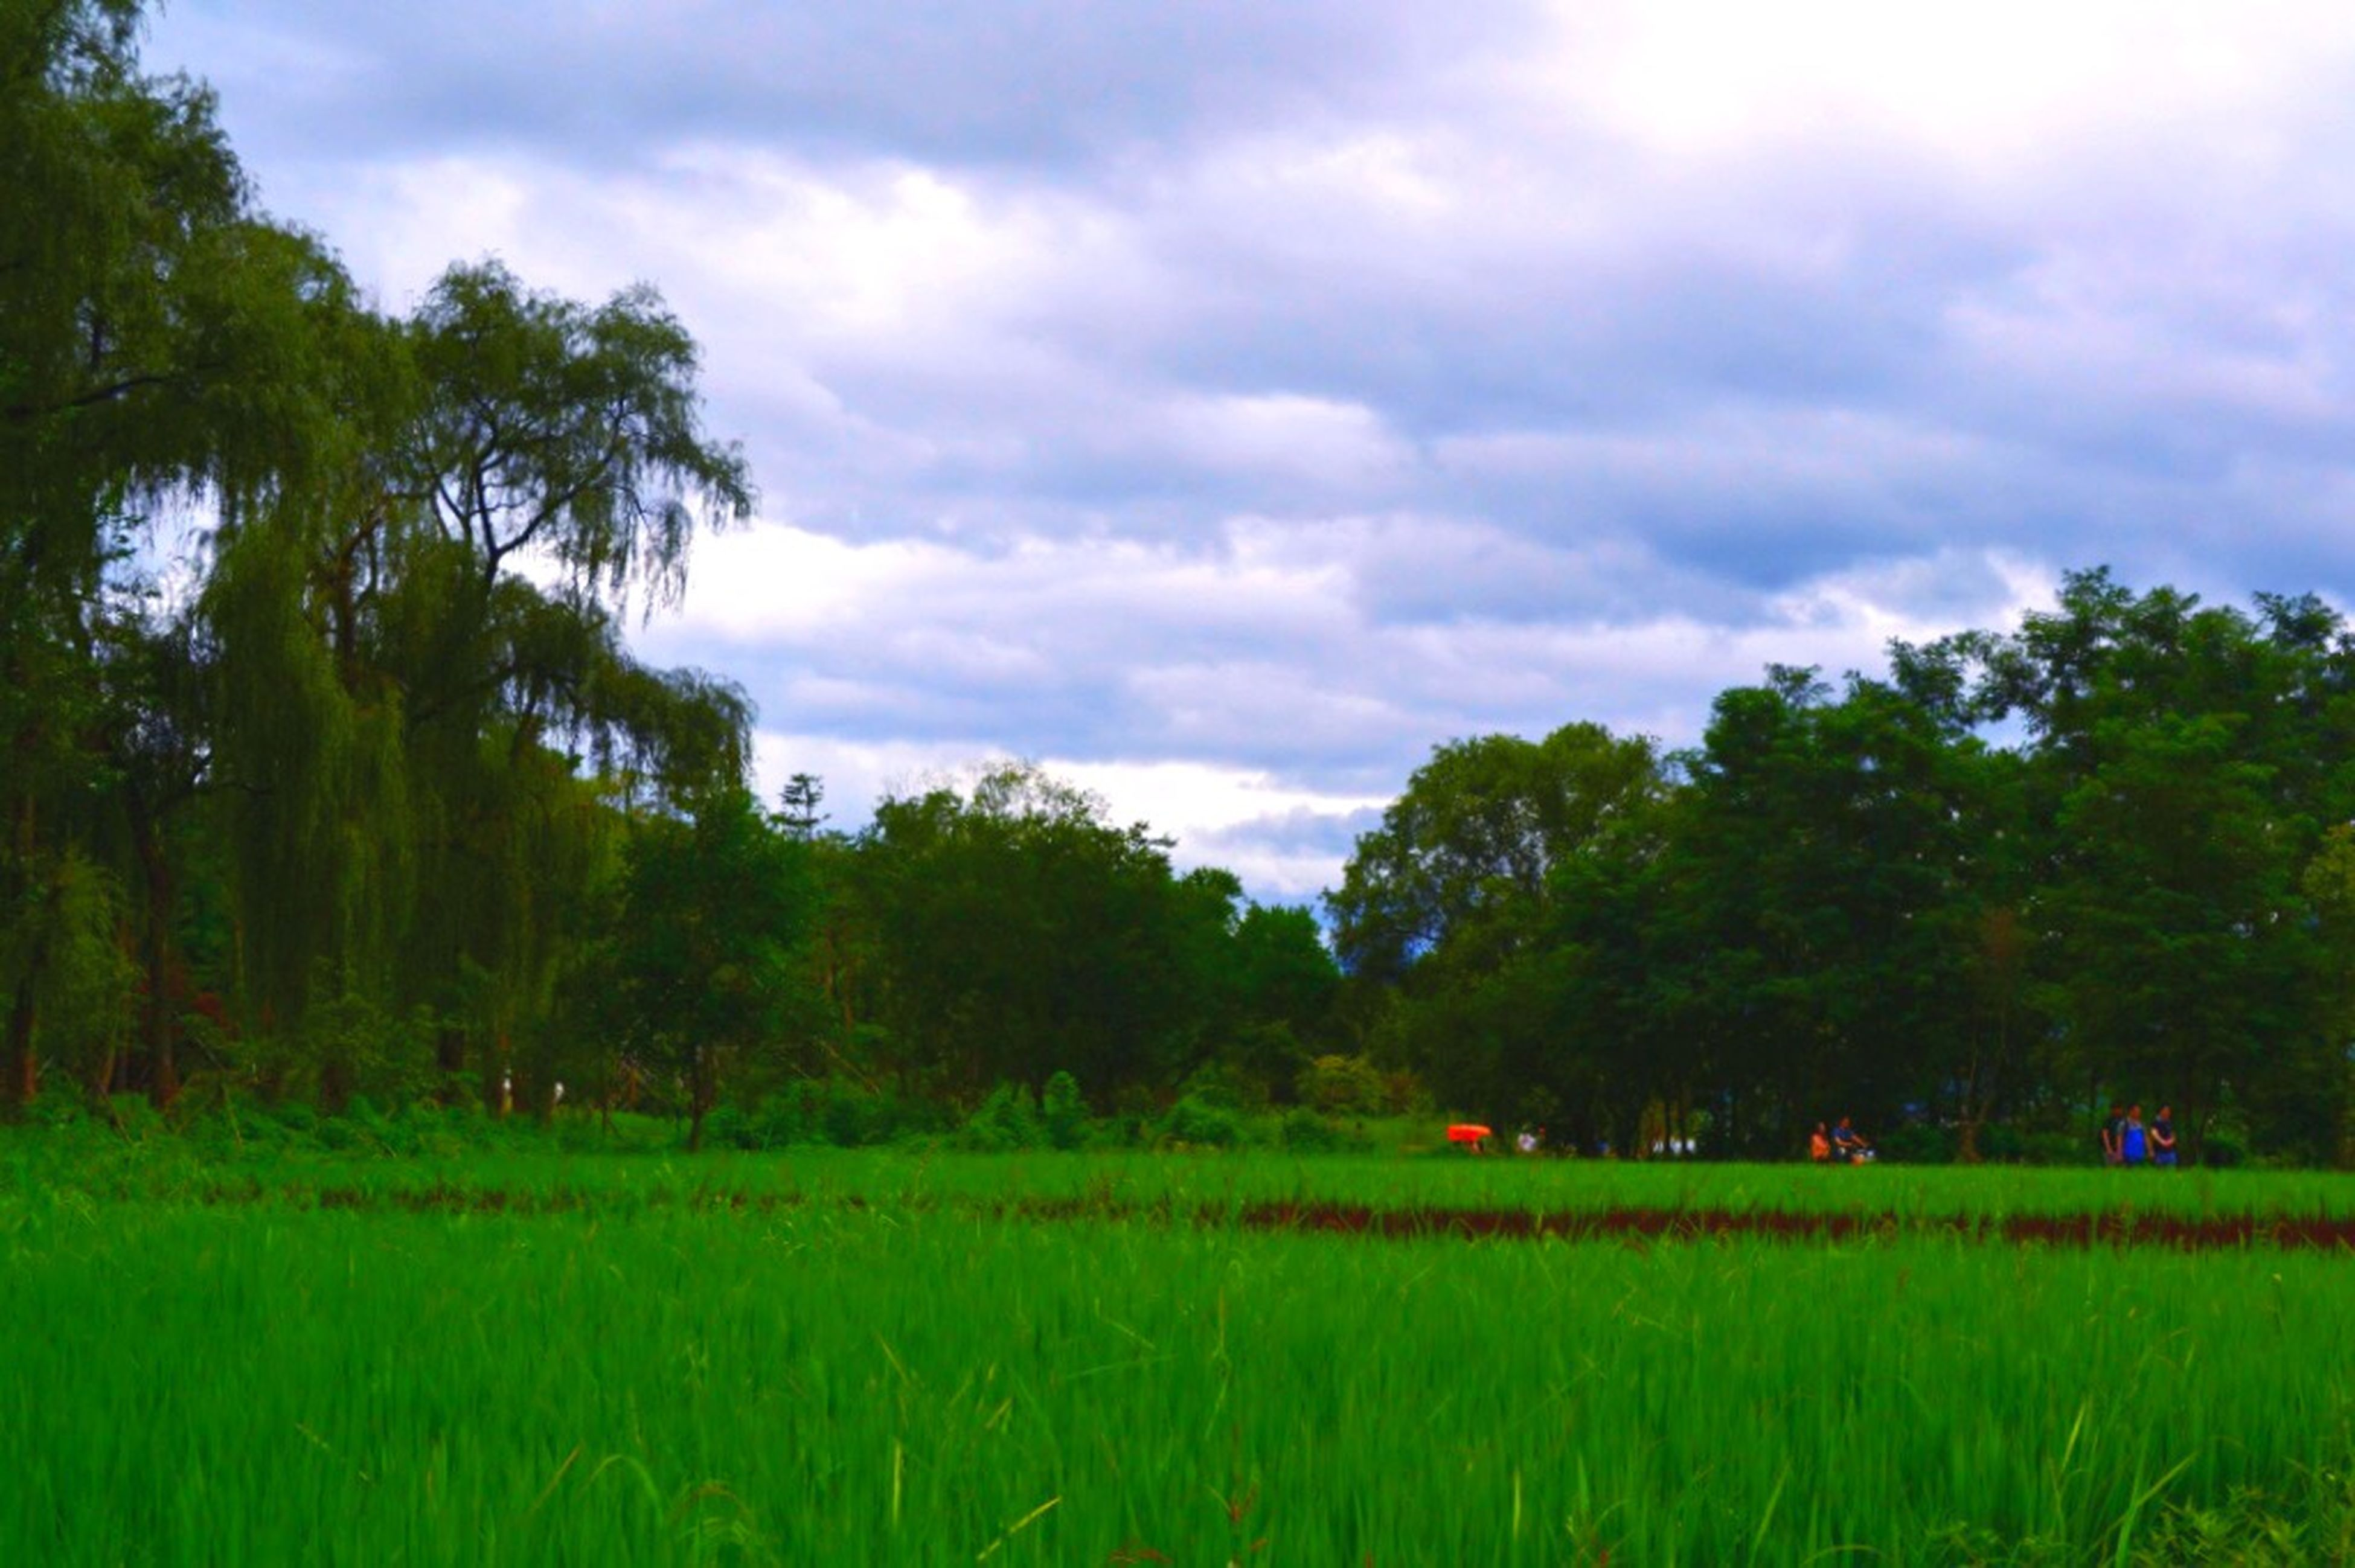 tree, sky, field, tranquil scene, grass, landscape, tranquility, growth, green color, cloud - sky, cloudy, beauty in nature, scenics, nature, rural scene, agriculture, grassy, cloud, farm, crop